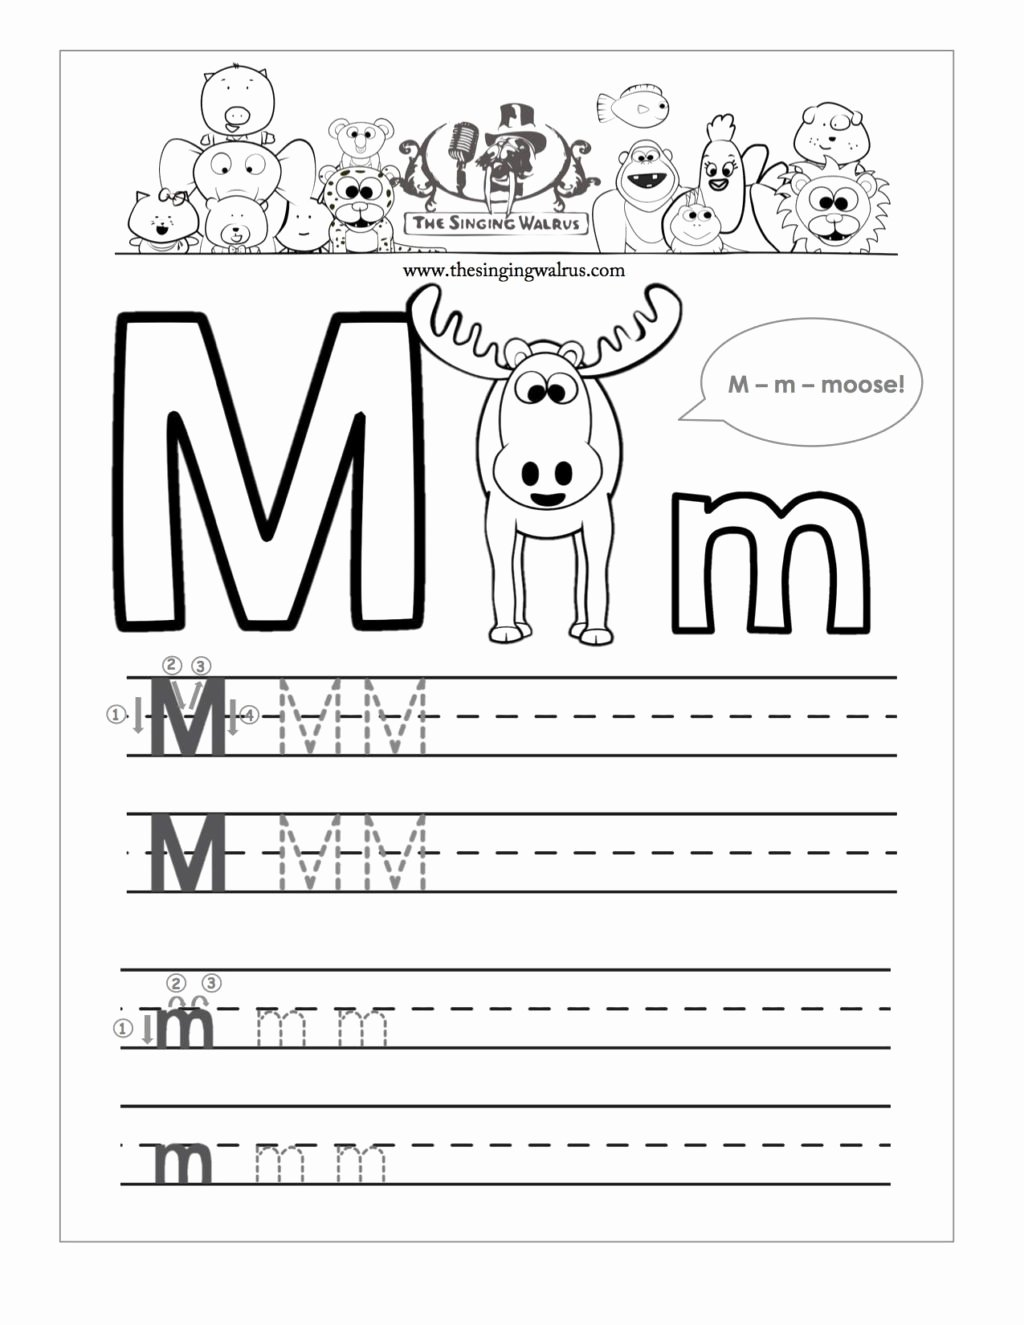 Letter M Worksheets for Preschoolers Inspirational Worksheet Worksheet Writing Practice for Kindergarten